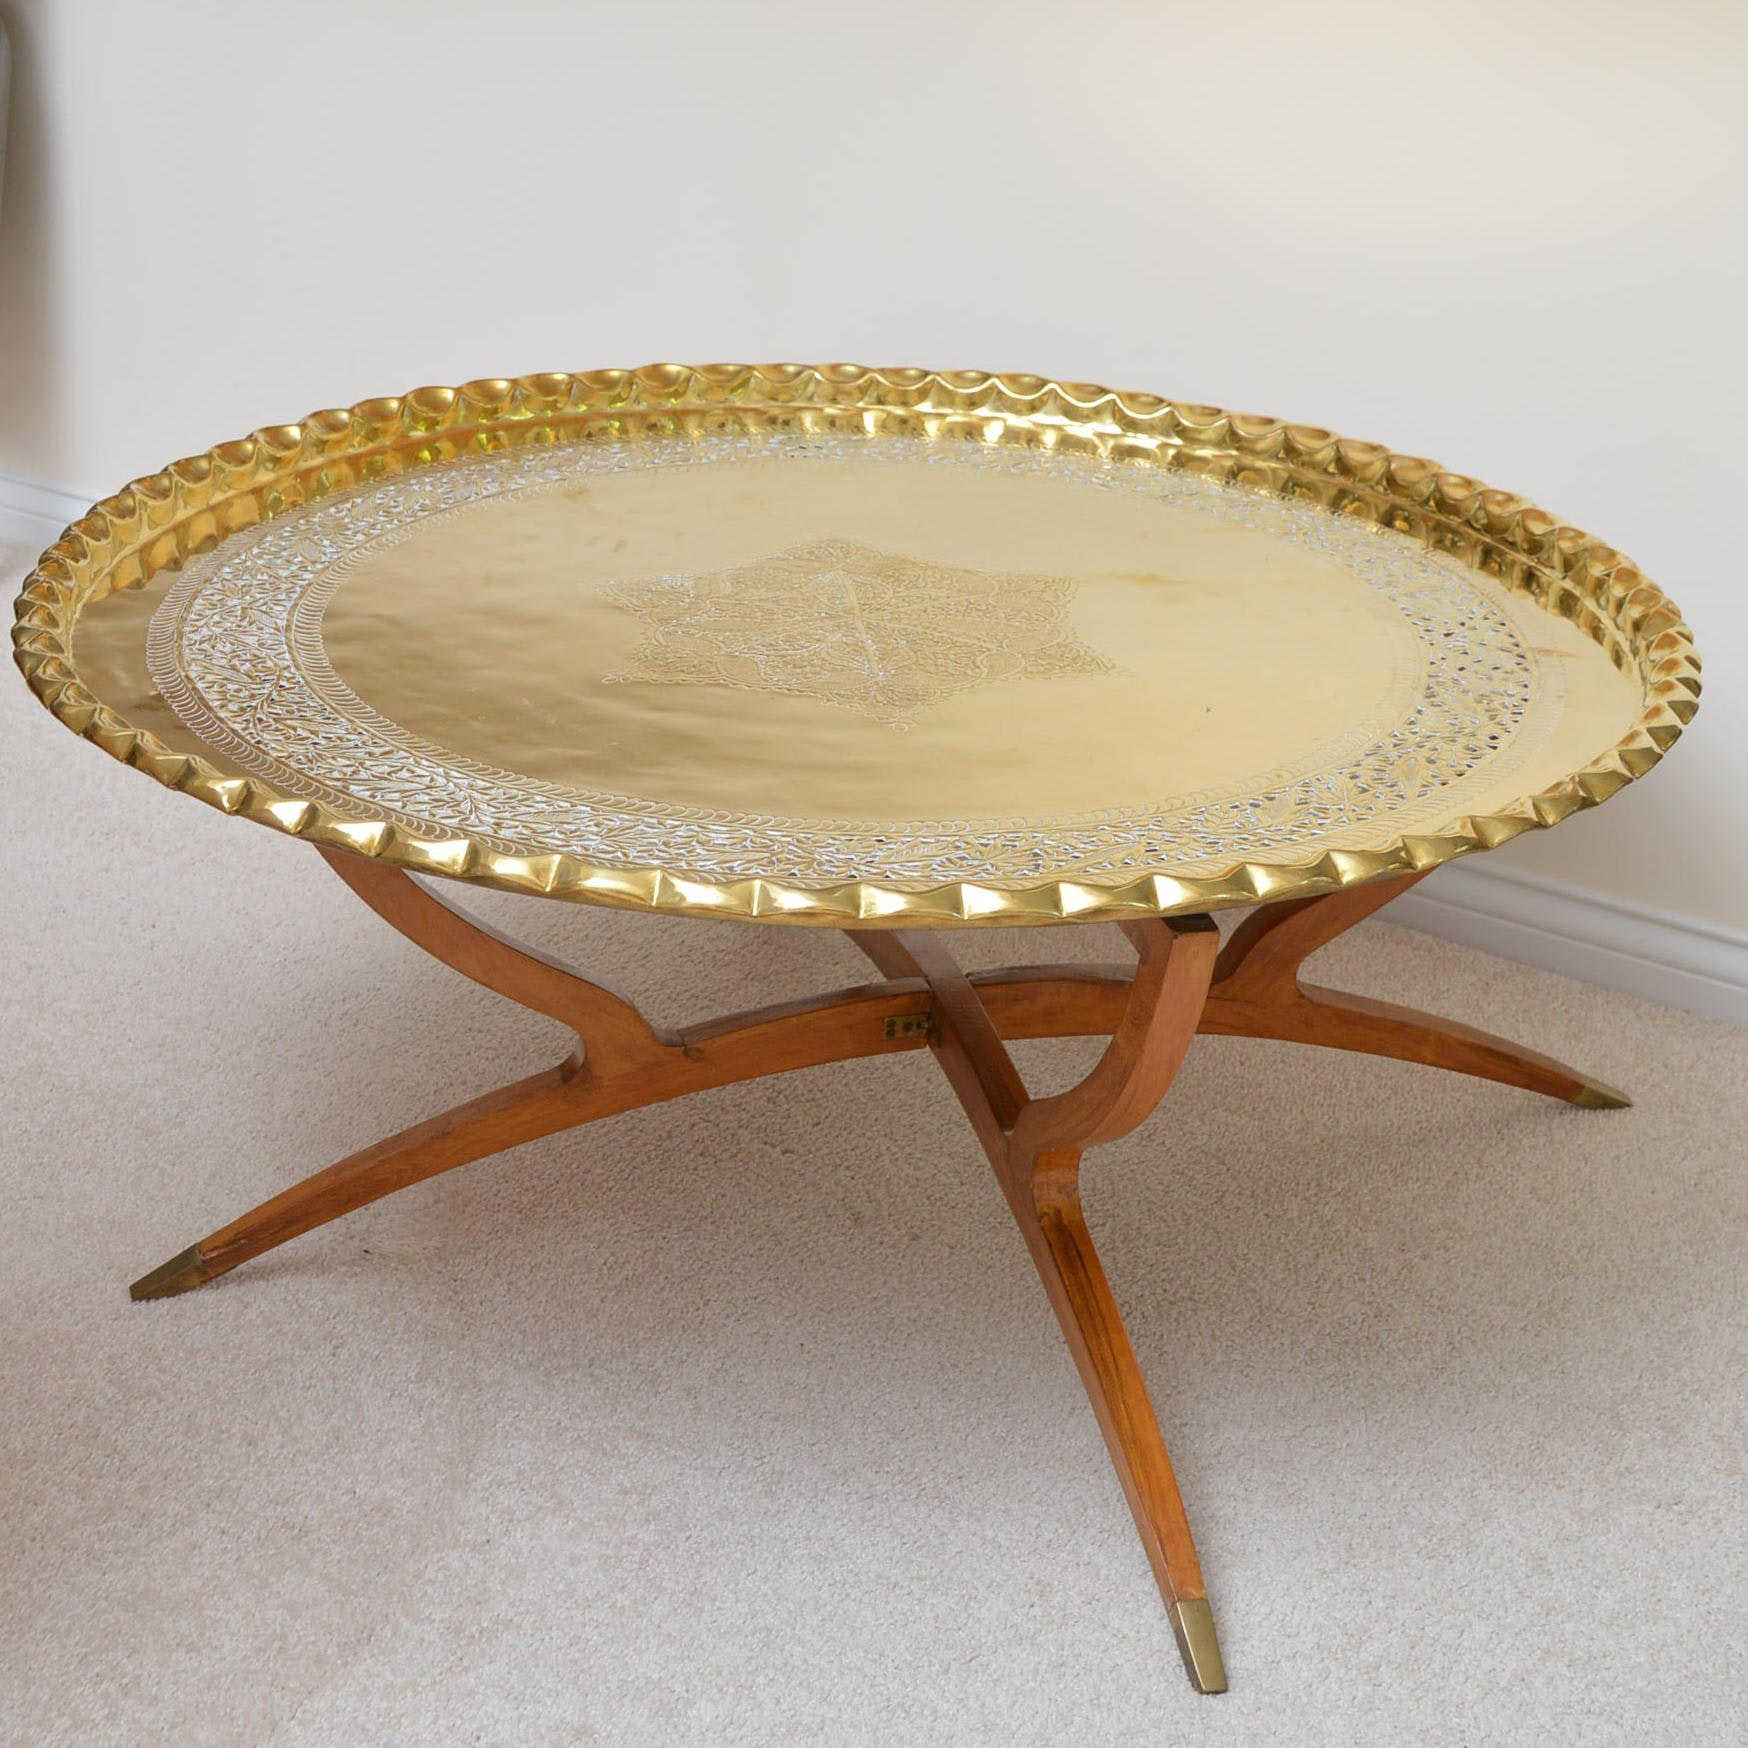 Moroccan Style Collapsible Coffee Table With Tray Top